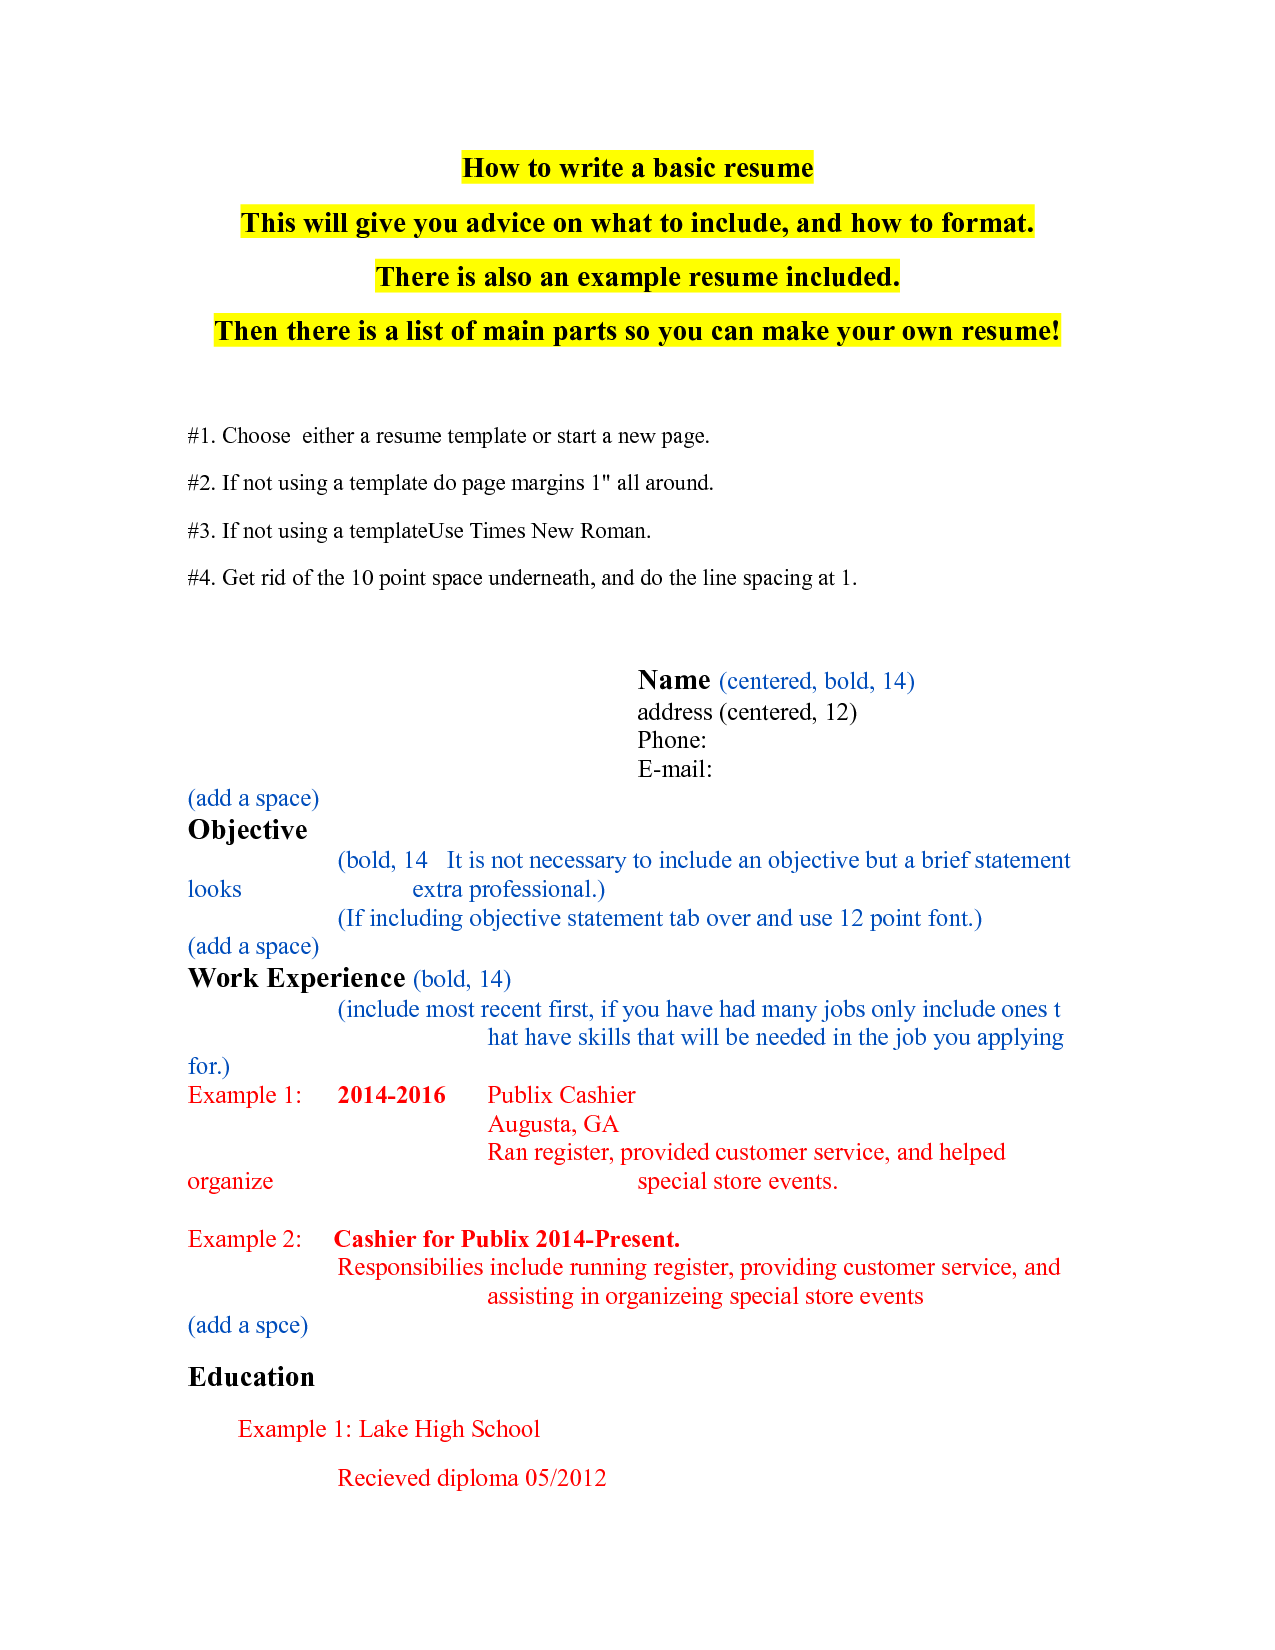 SOLUTION: How to write a resume - Studypool